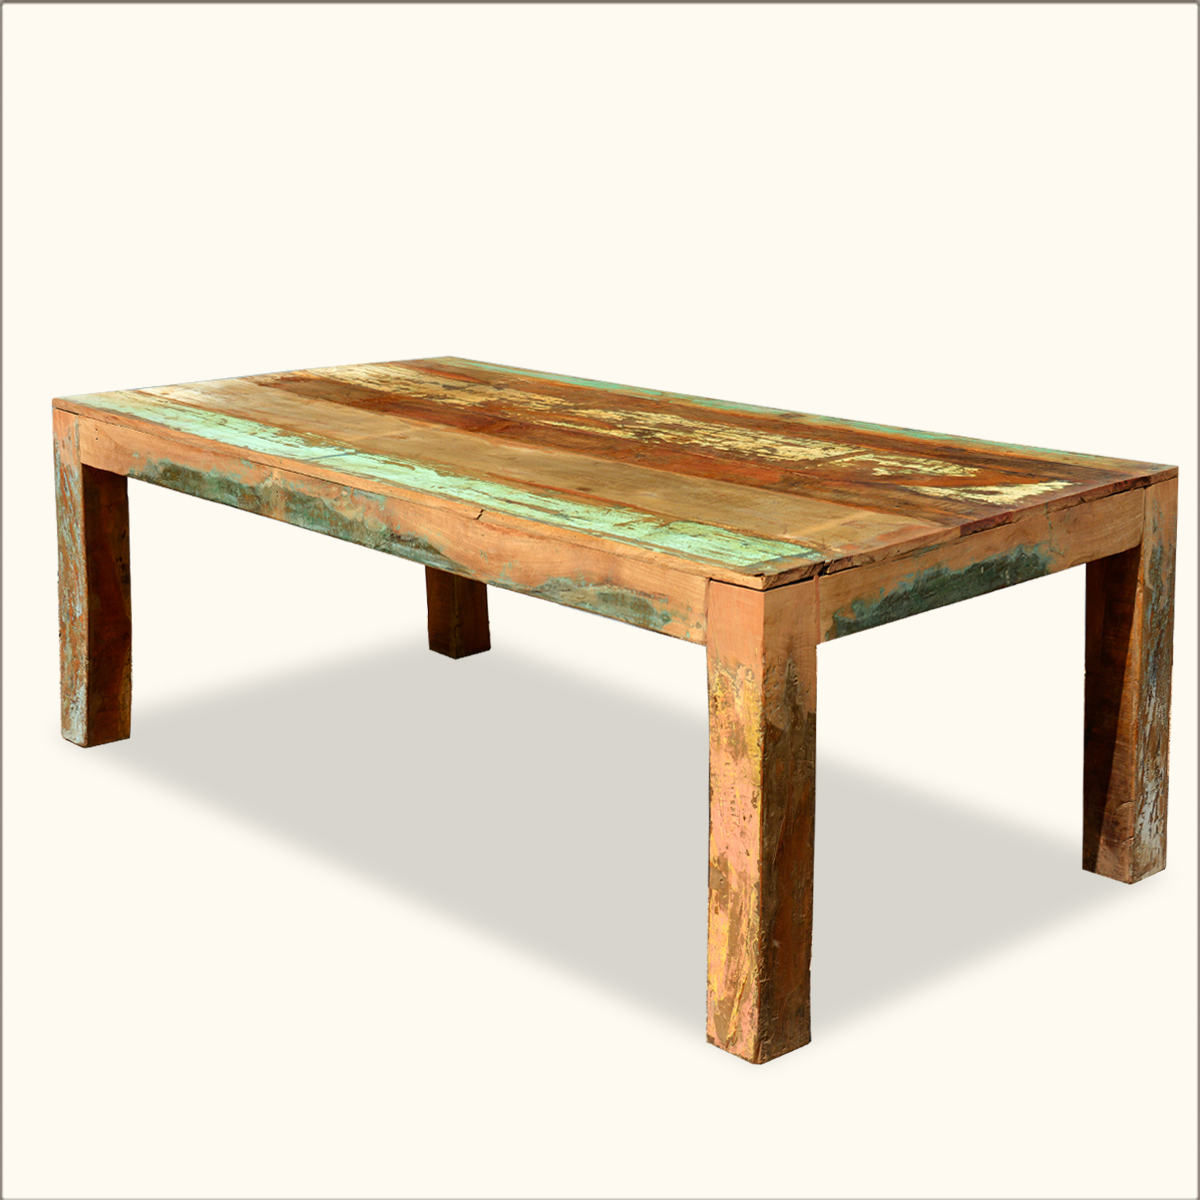 large dining table rustic for 8 distressed wood furniture ebay